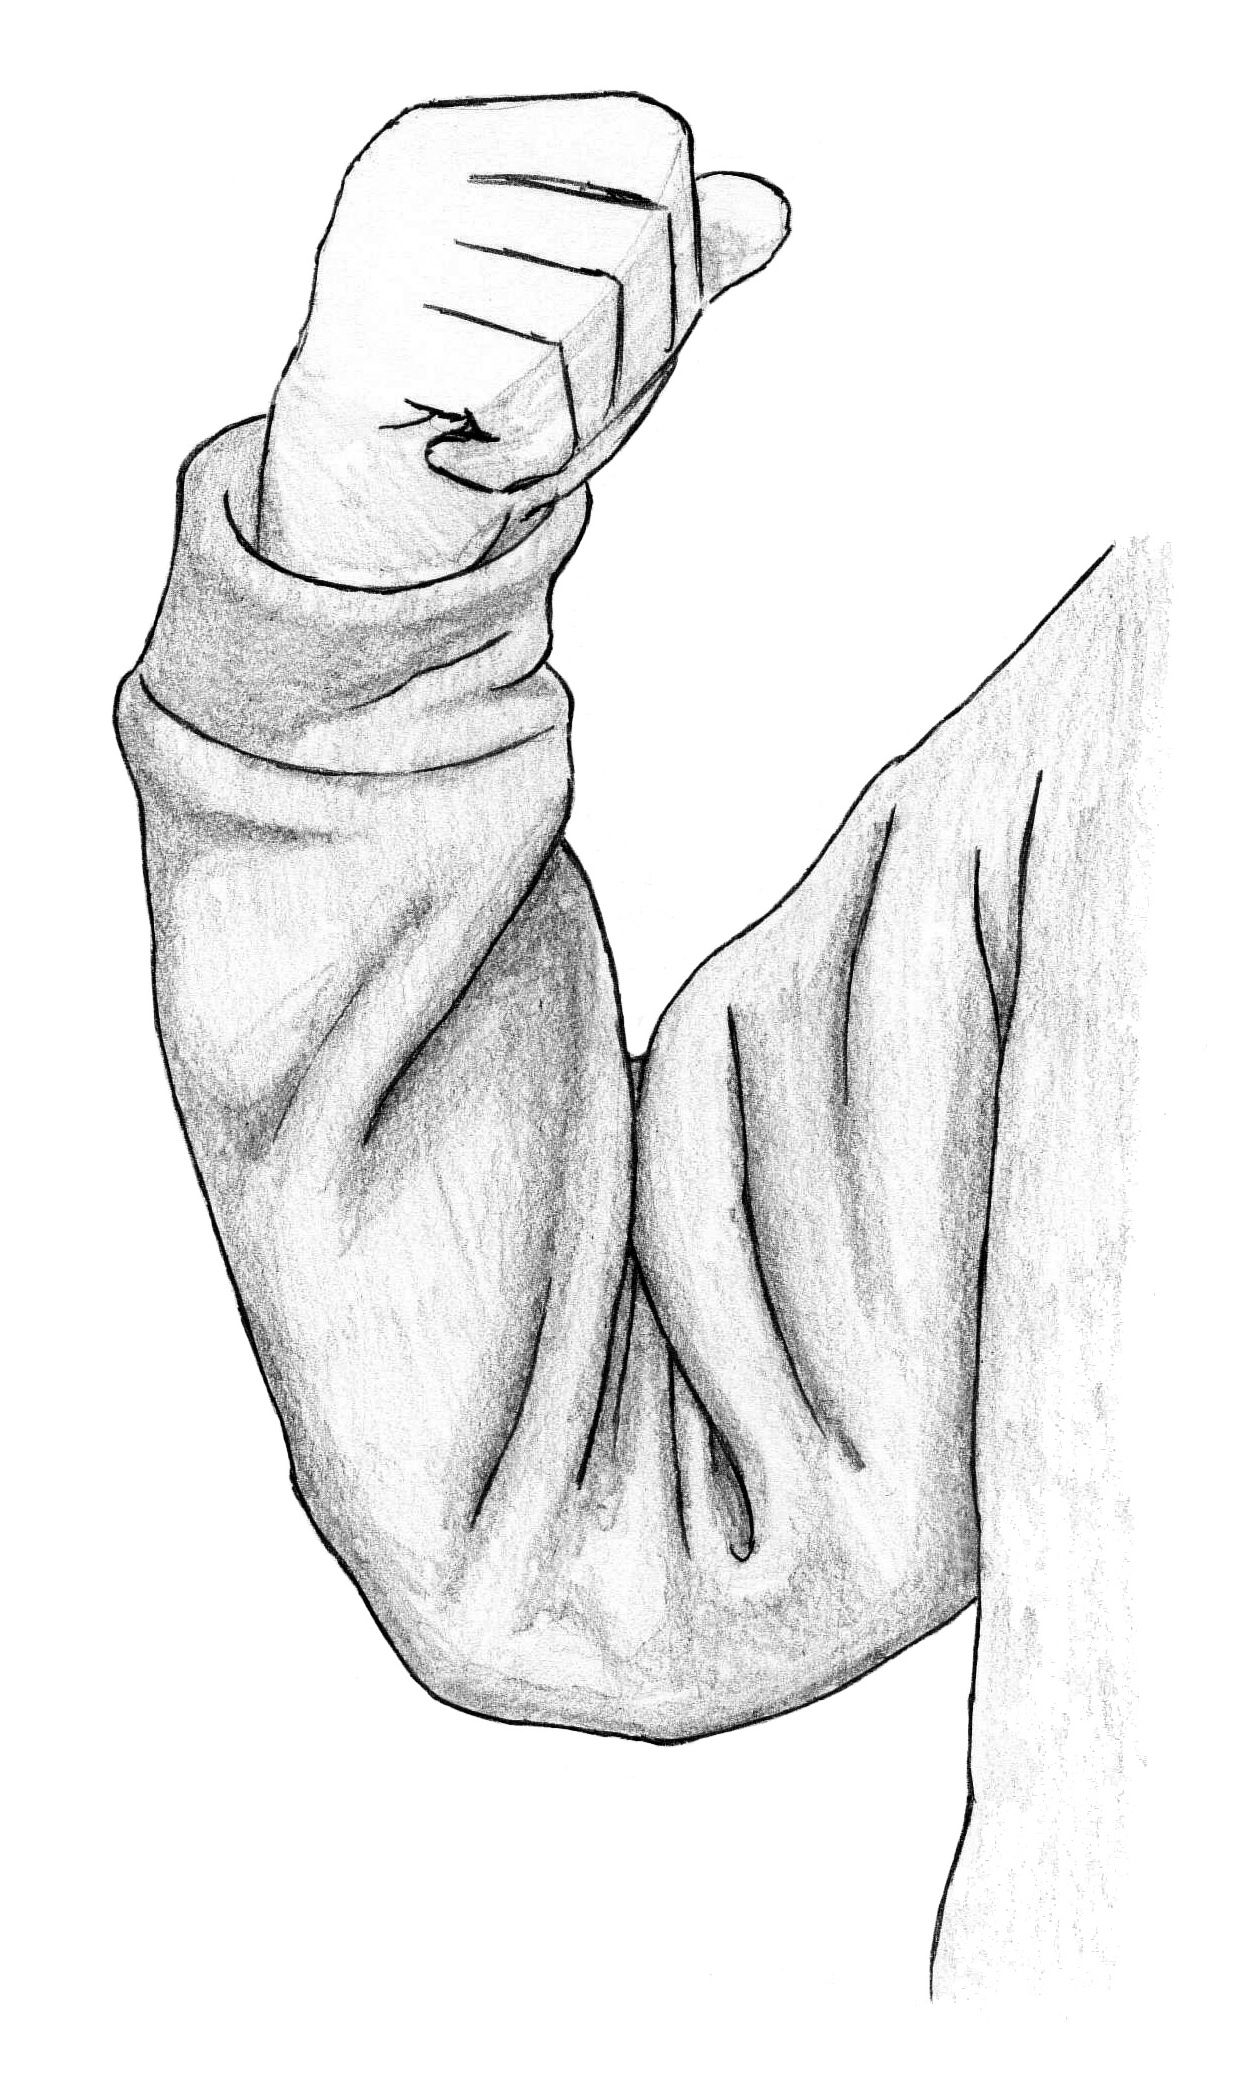 A beginners guide to drawing folds and clothes including the major types of folds and the full clothed figure